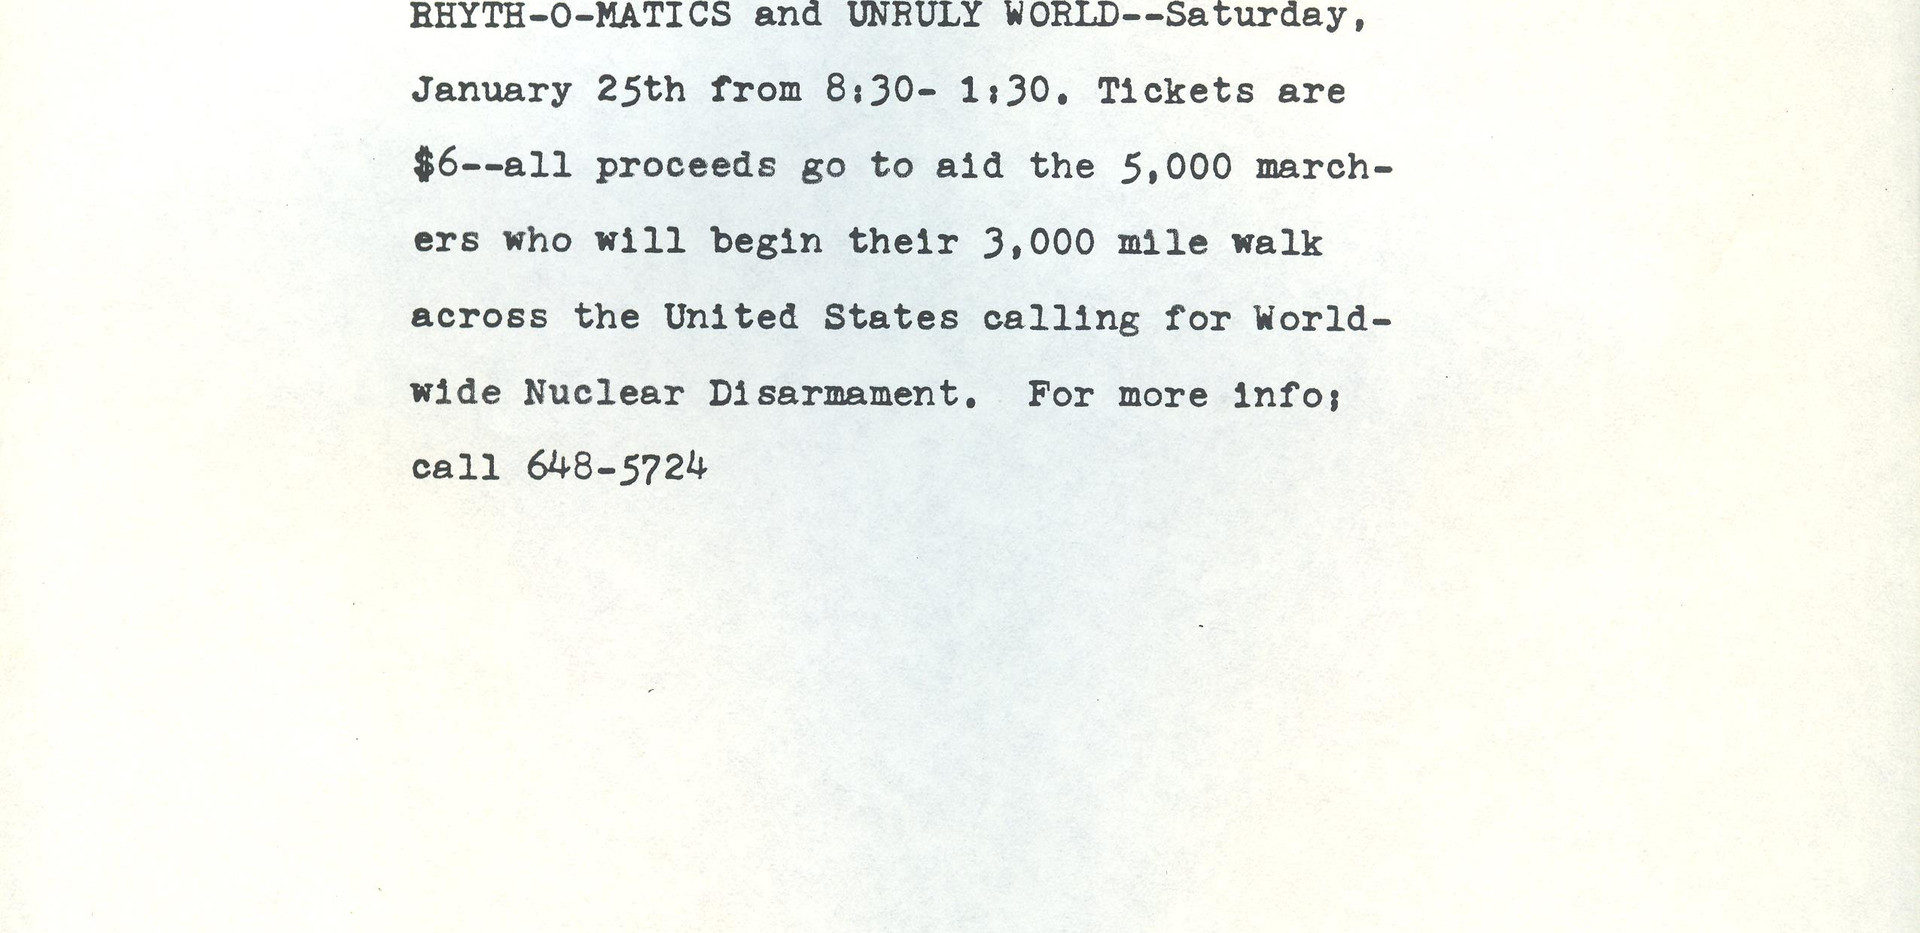 ROM Unruly World Press Release 1986 001.